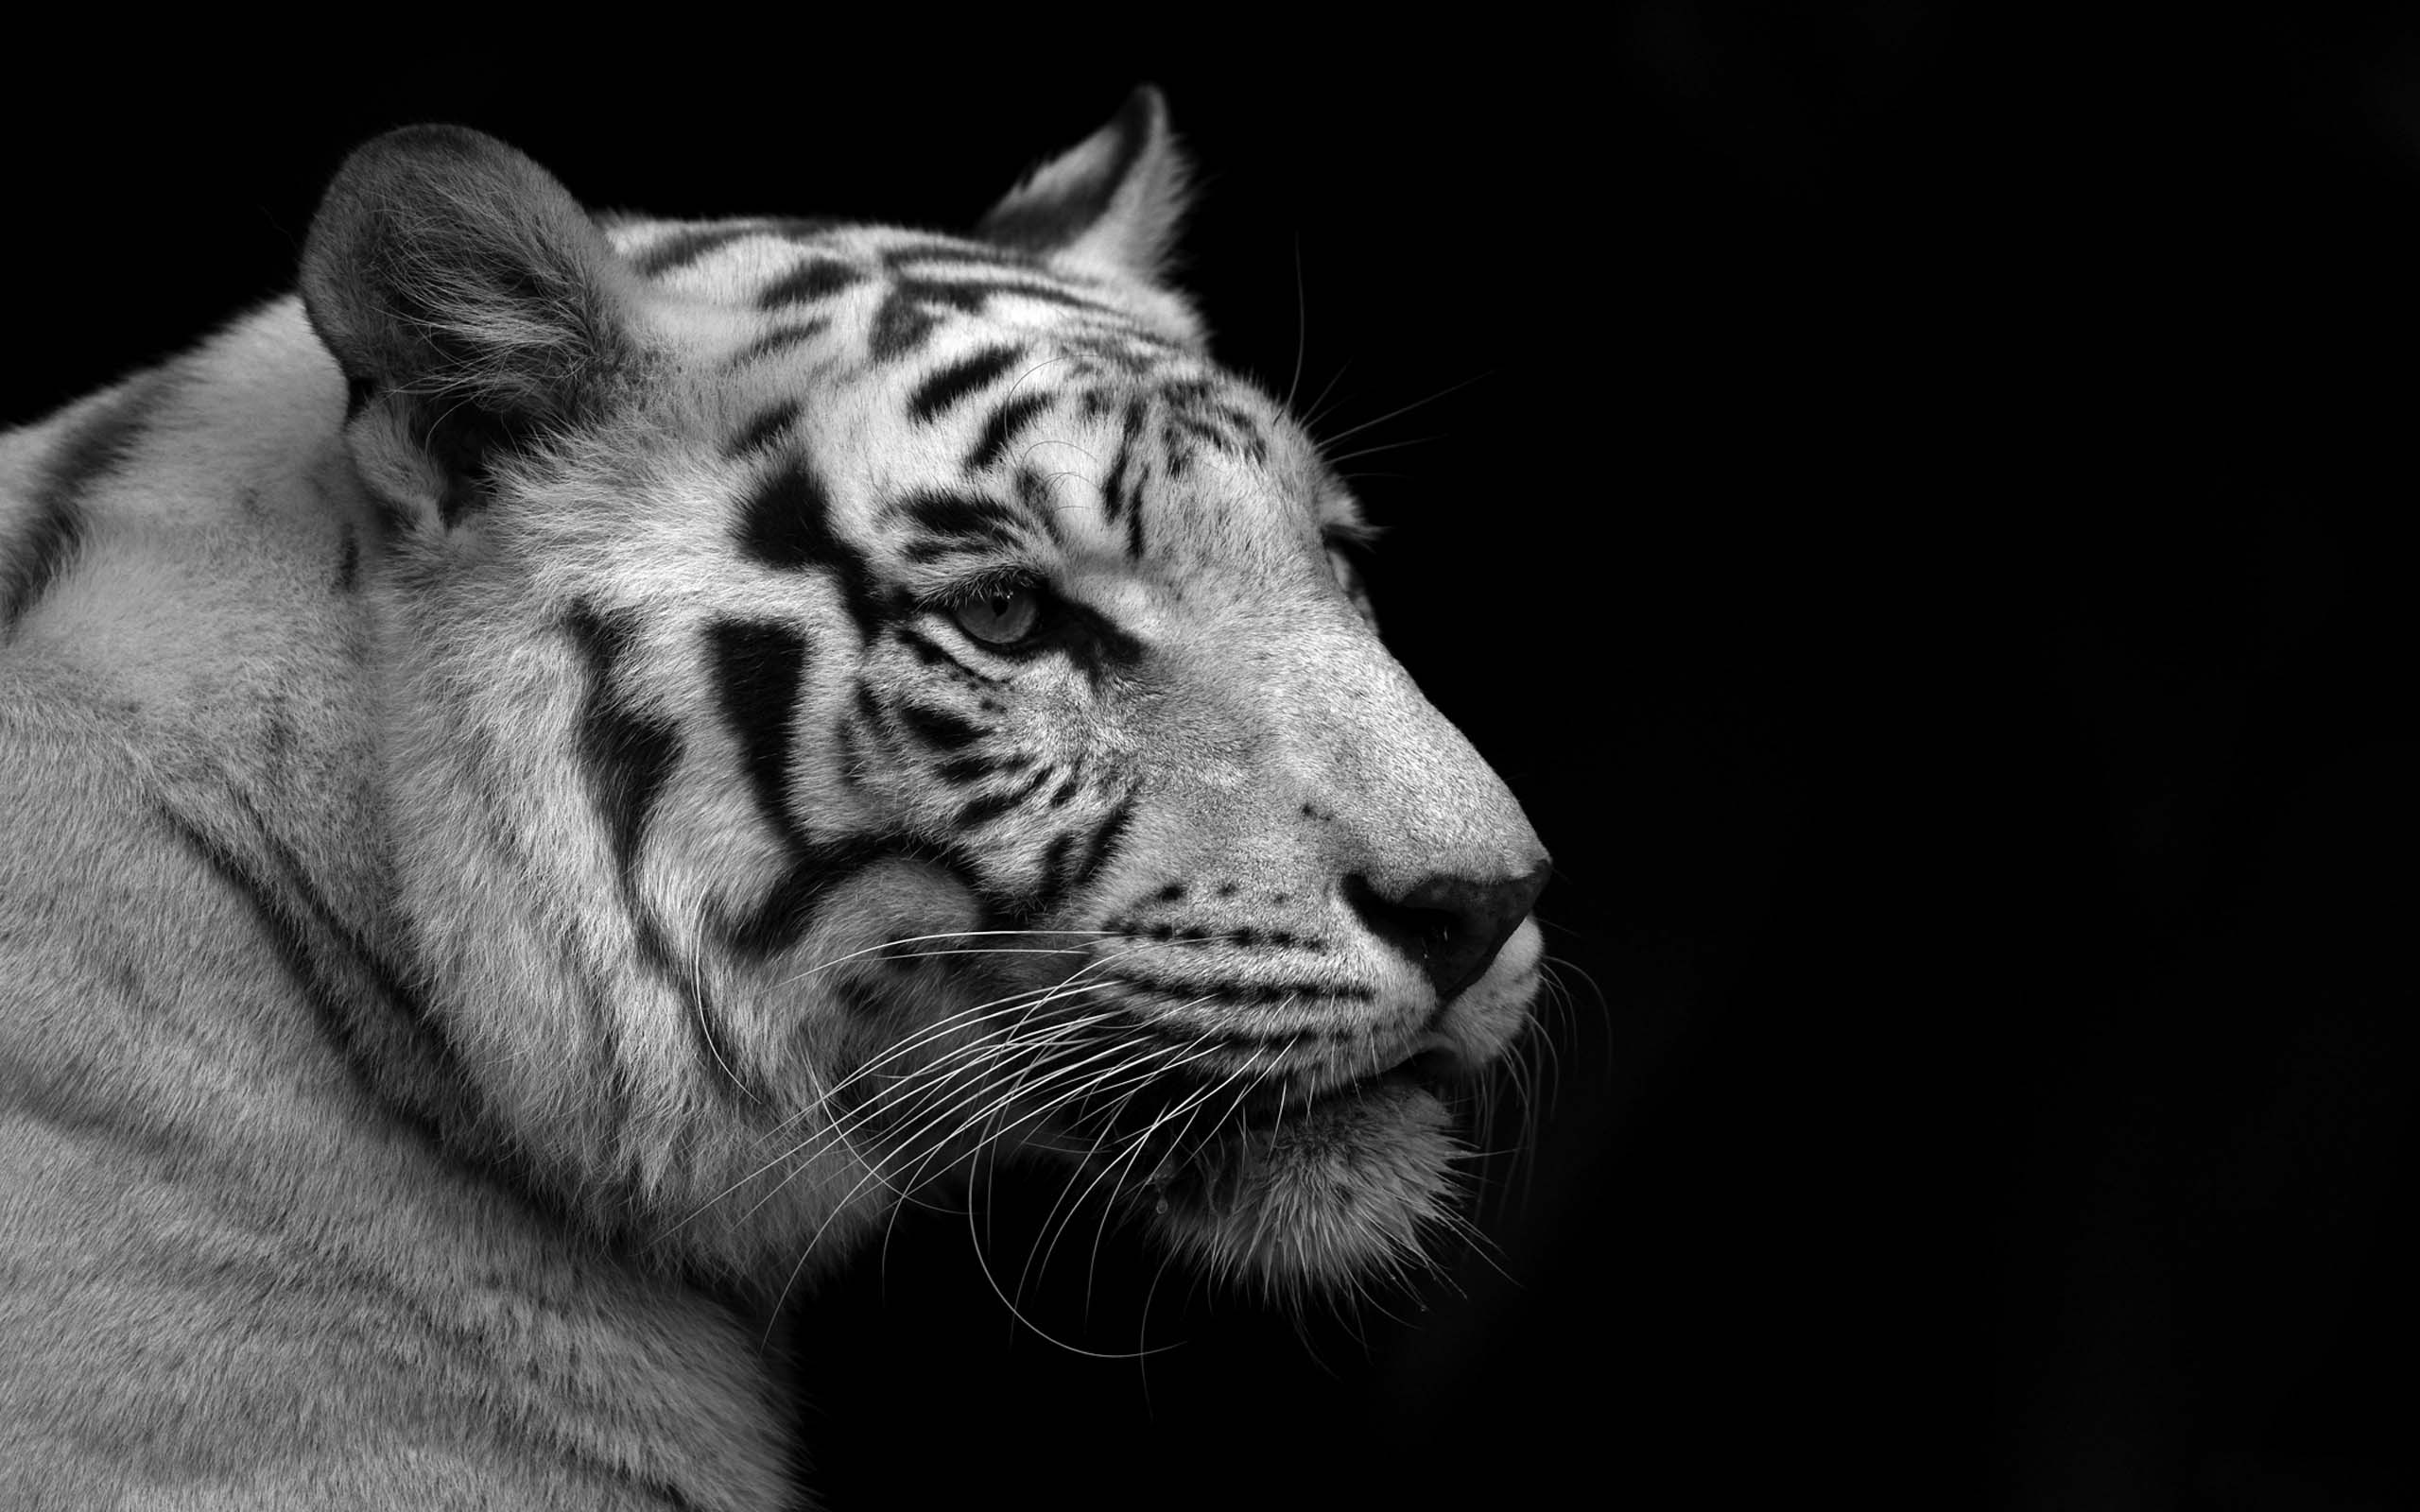 White Tiger Wallpaper Download – Free wallpaper download